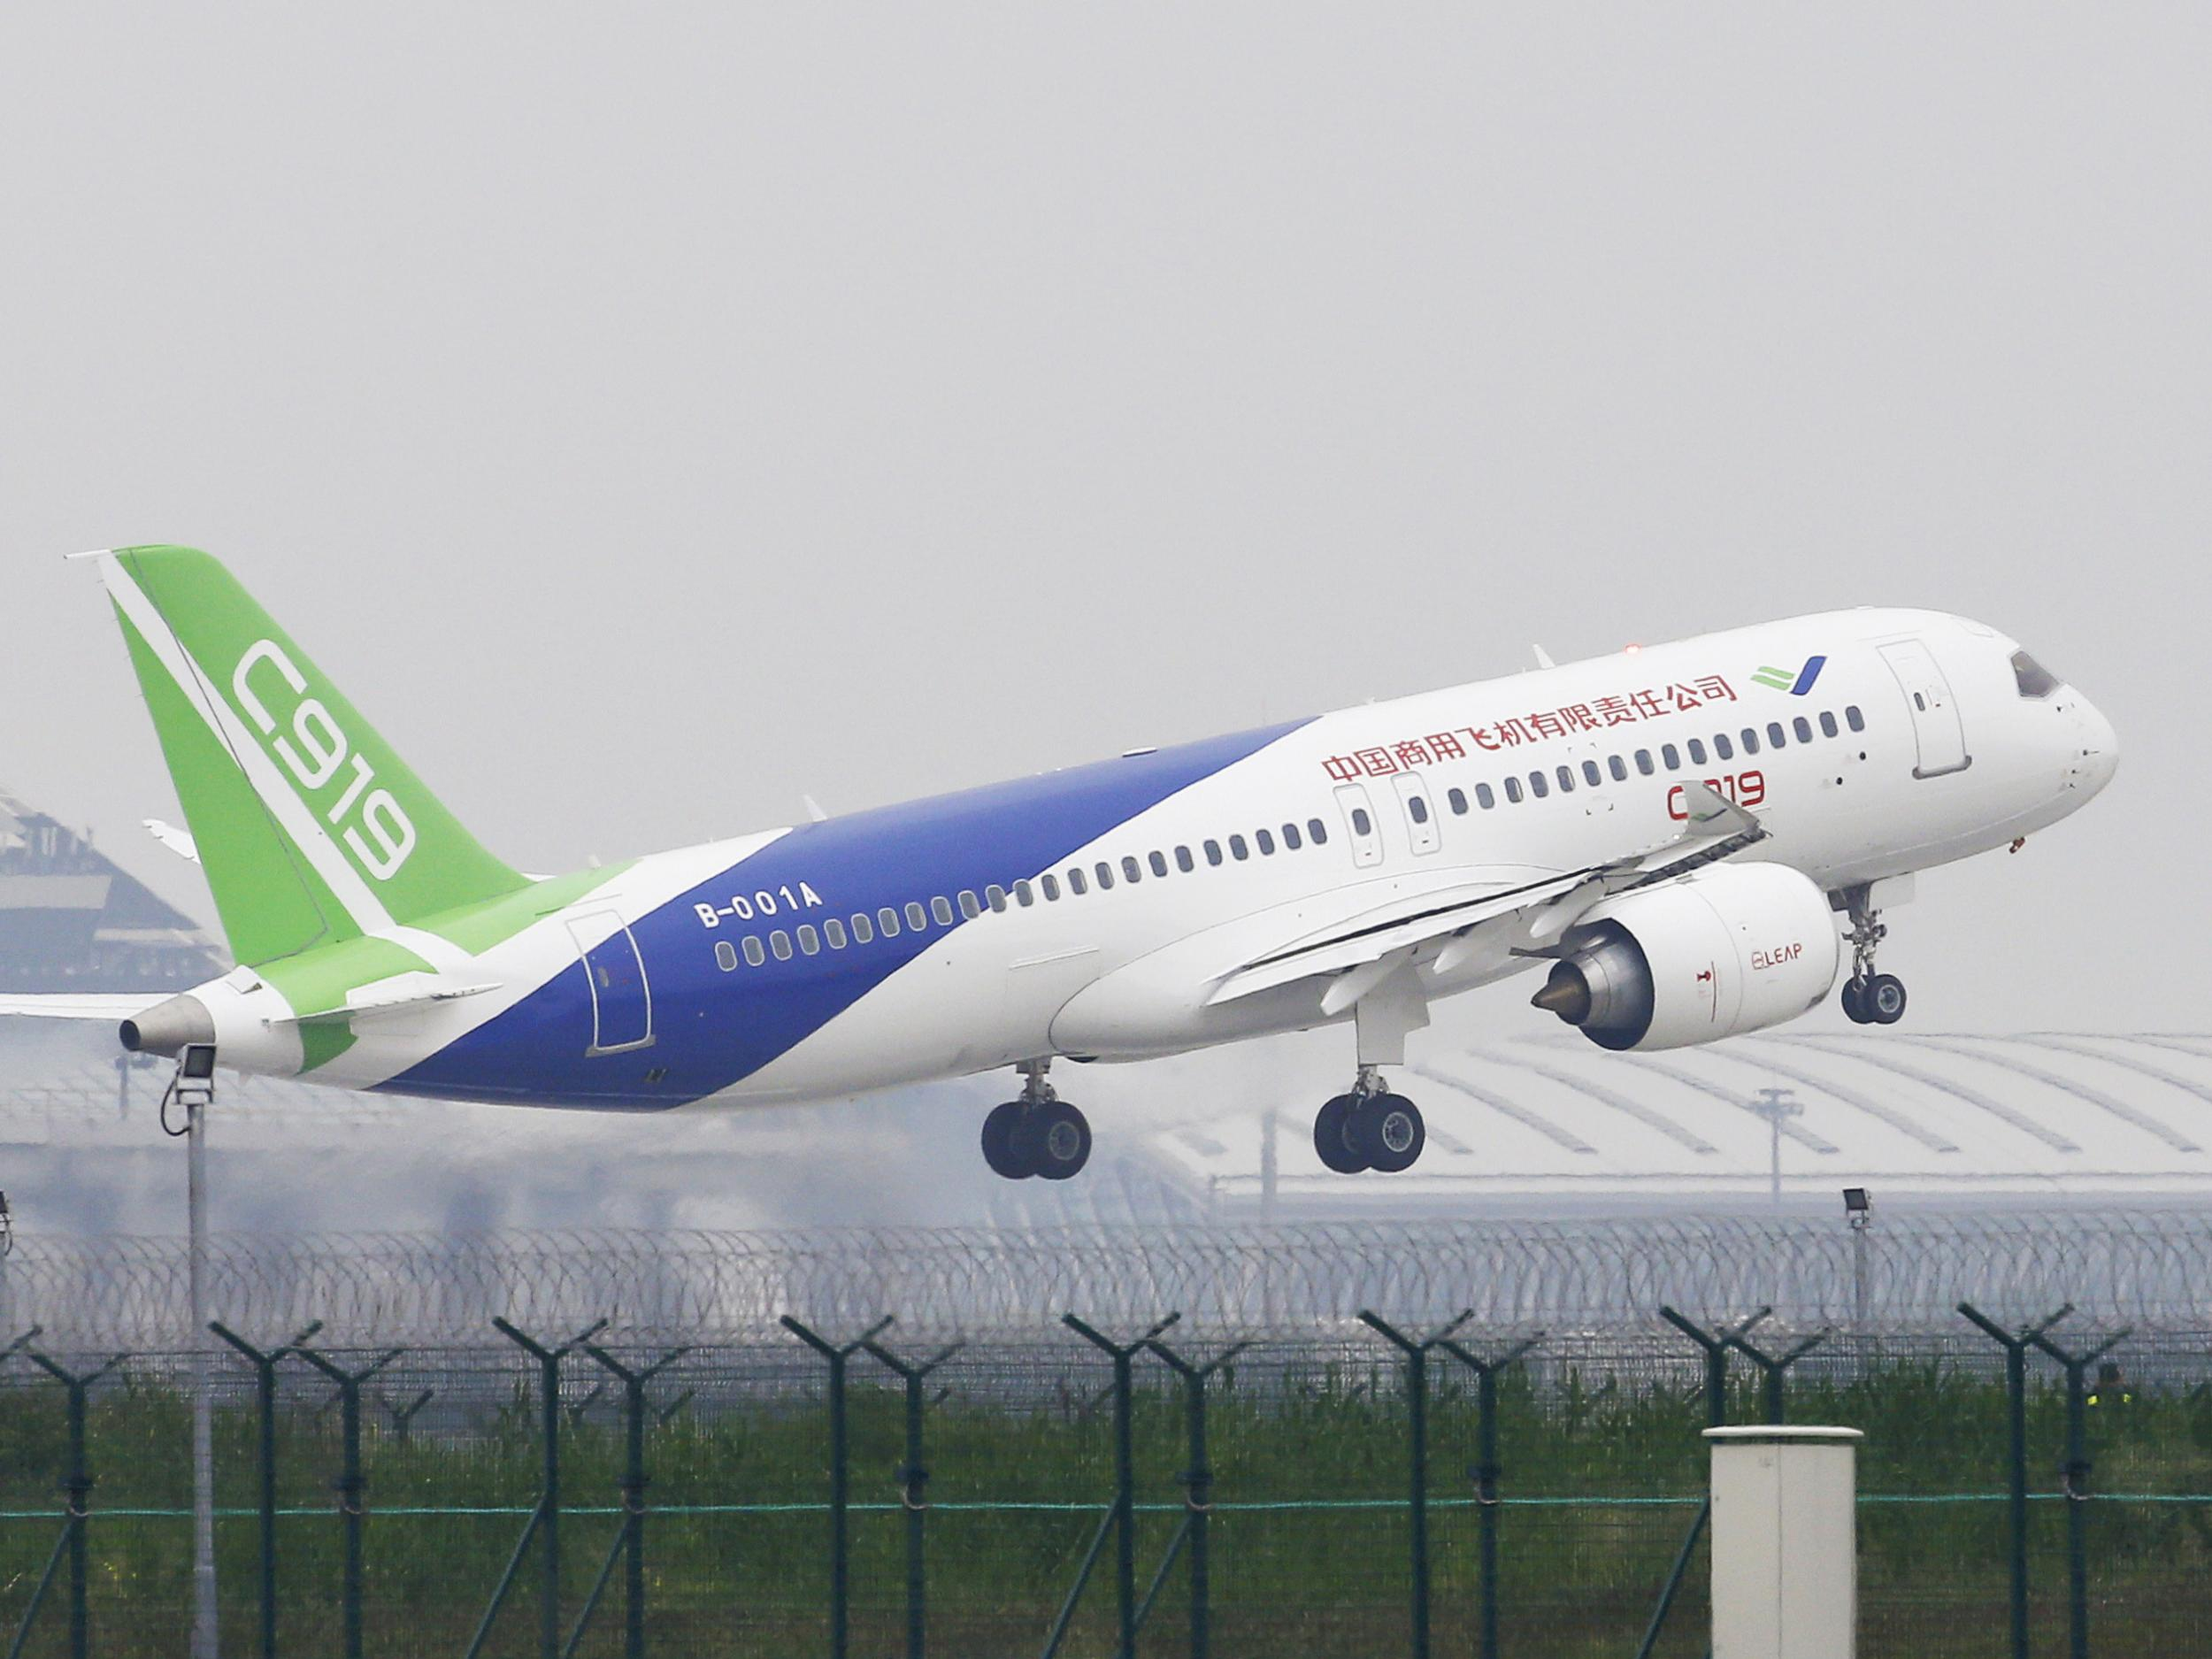 China's first domestically manufactured passenger jet makes maiden flight